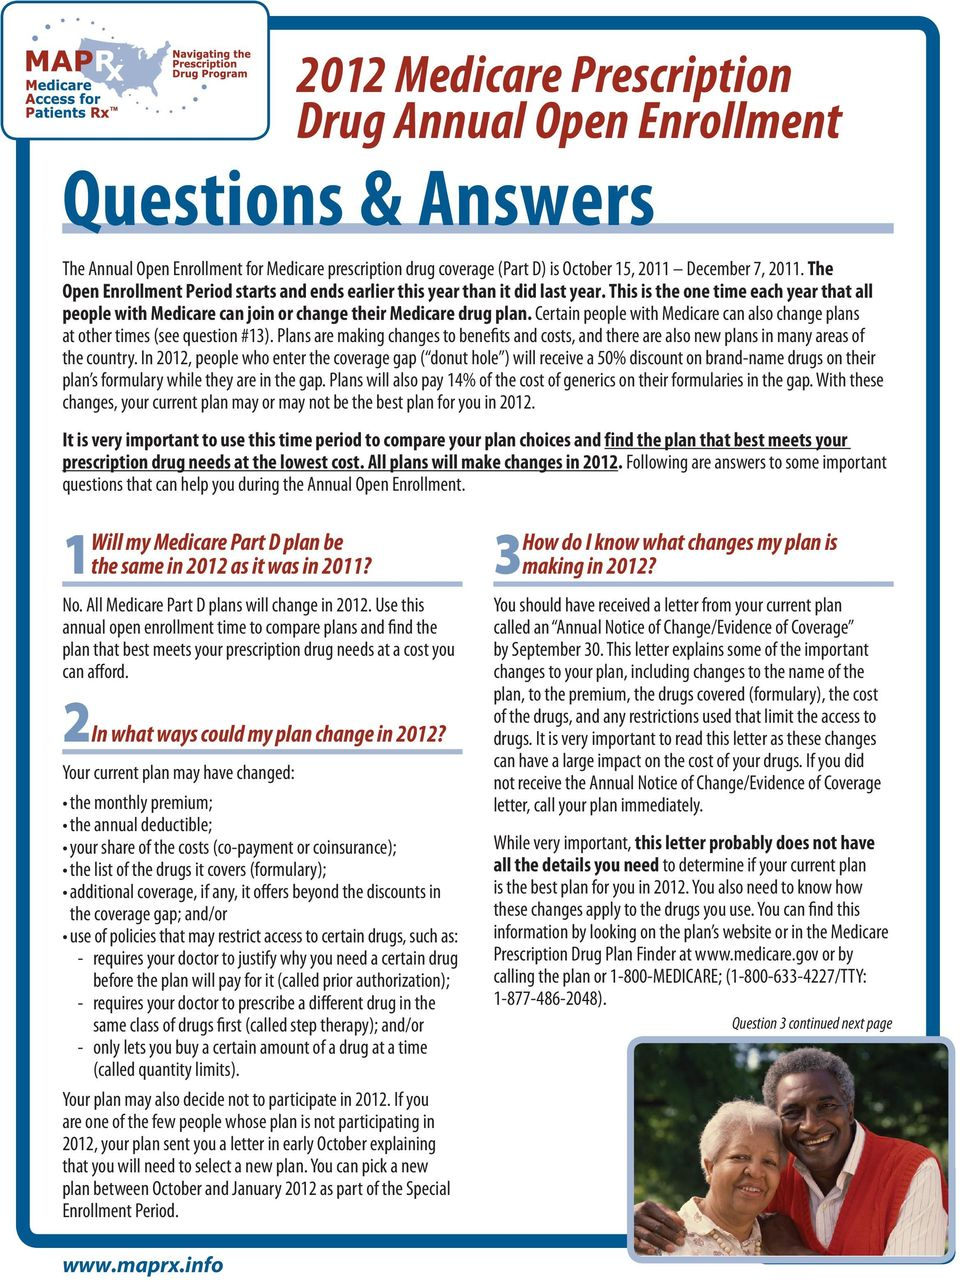 Certain people with Medicare can also change plans at other times (see question #13). Plans are making changes to benefits and costs, and there are also new plans in many areas of the country.